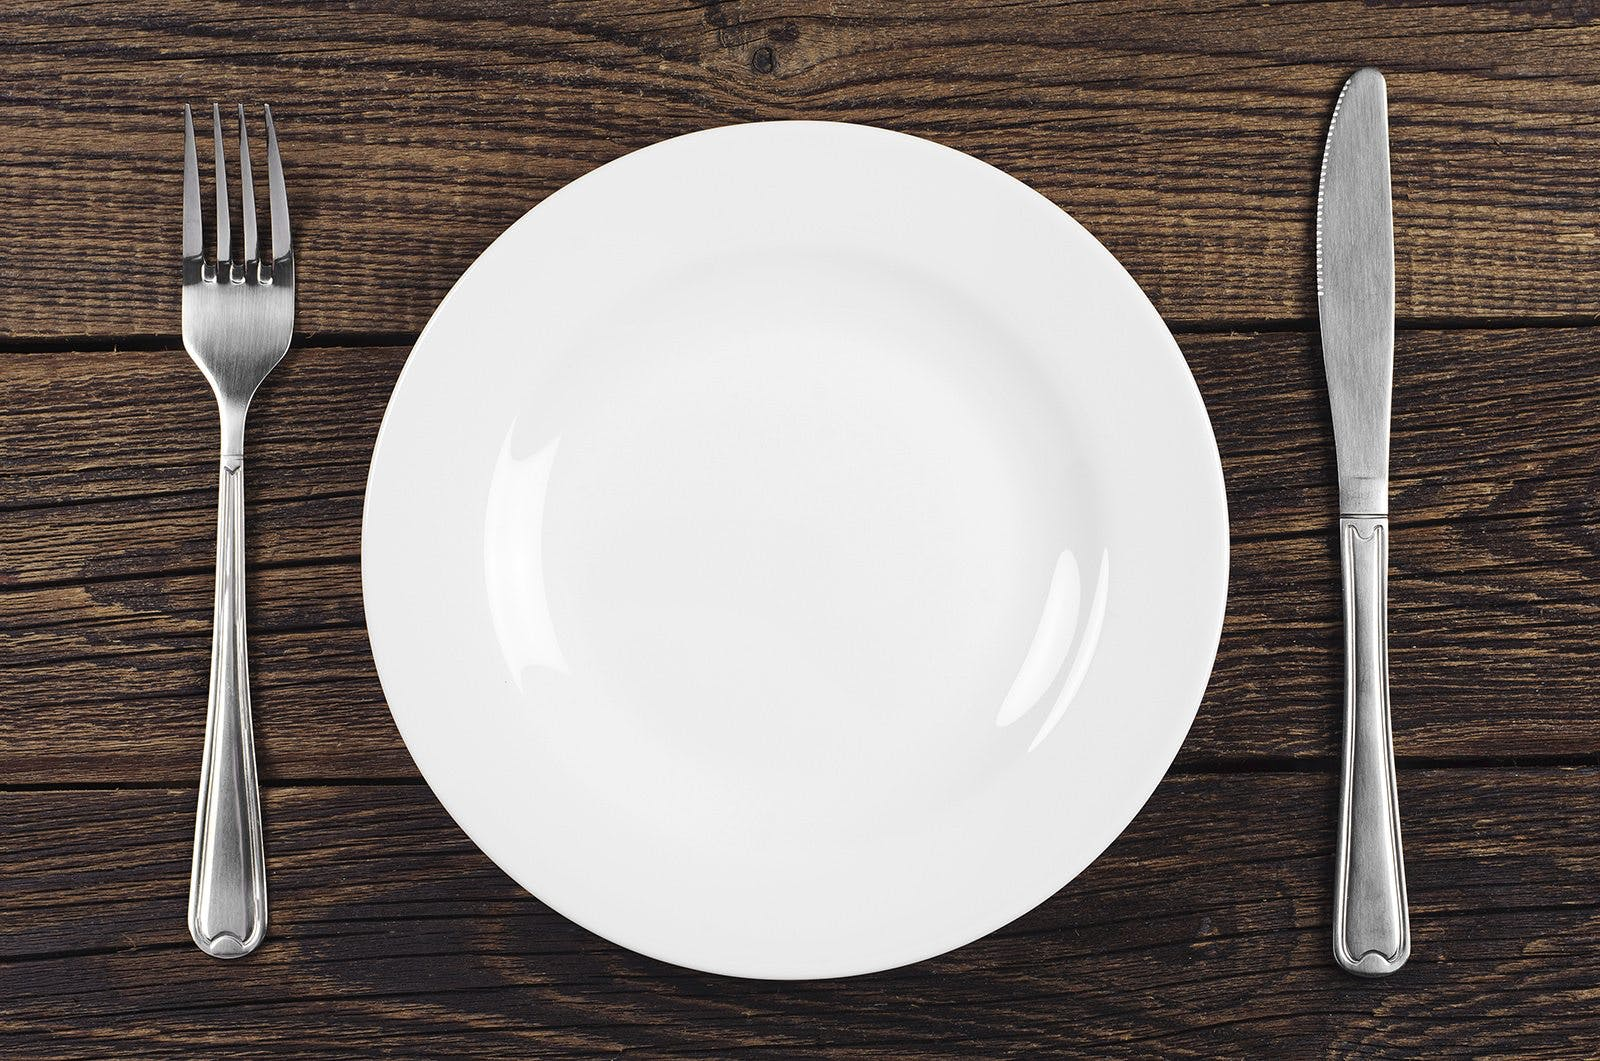 Lose weight using intermittent fasting